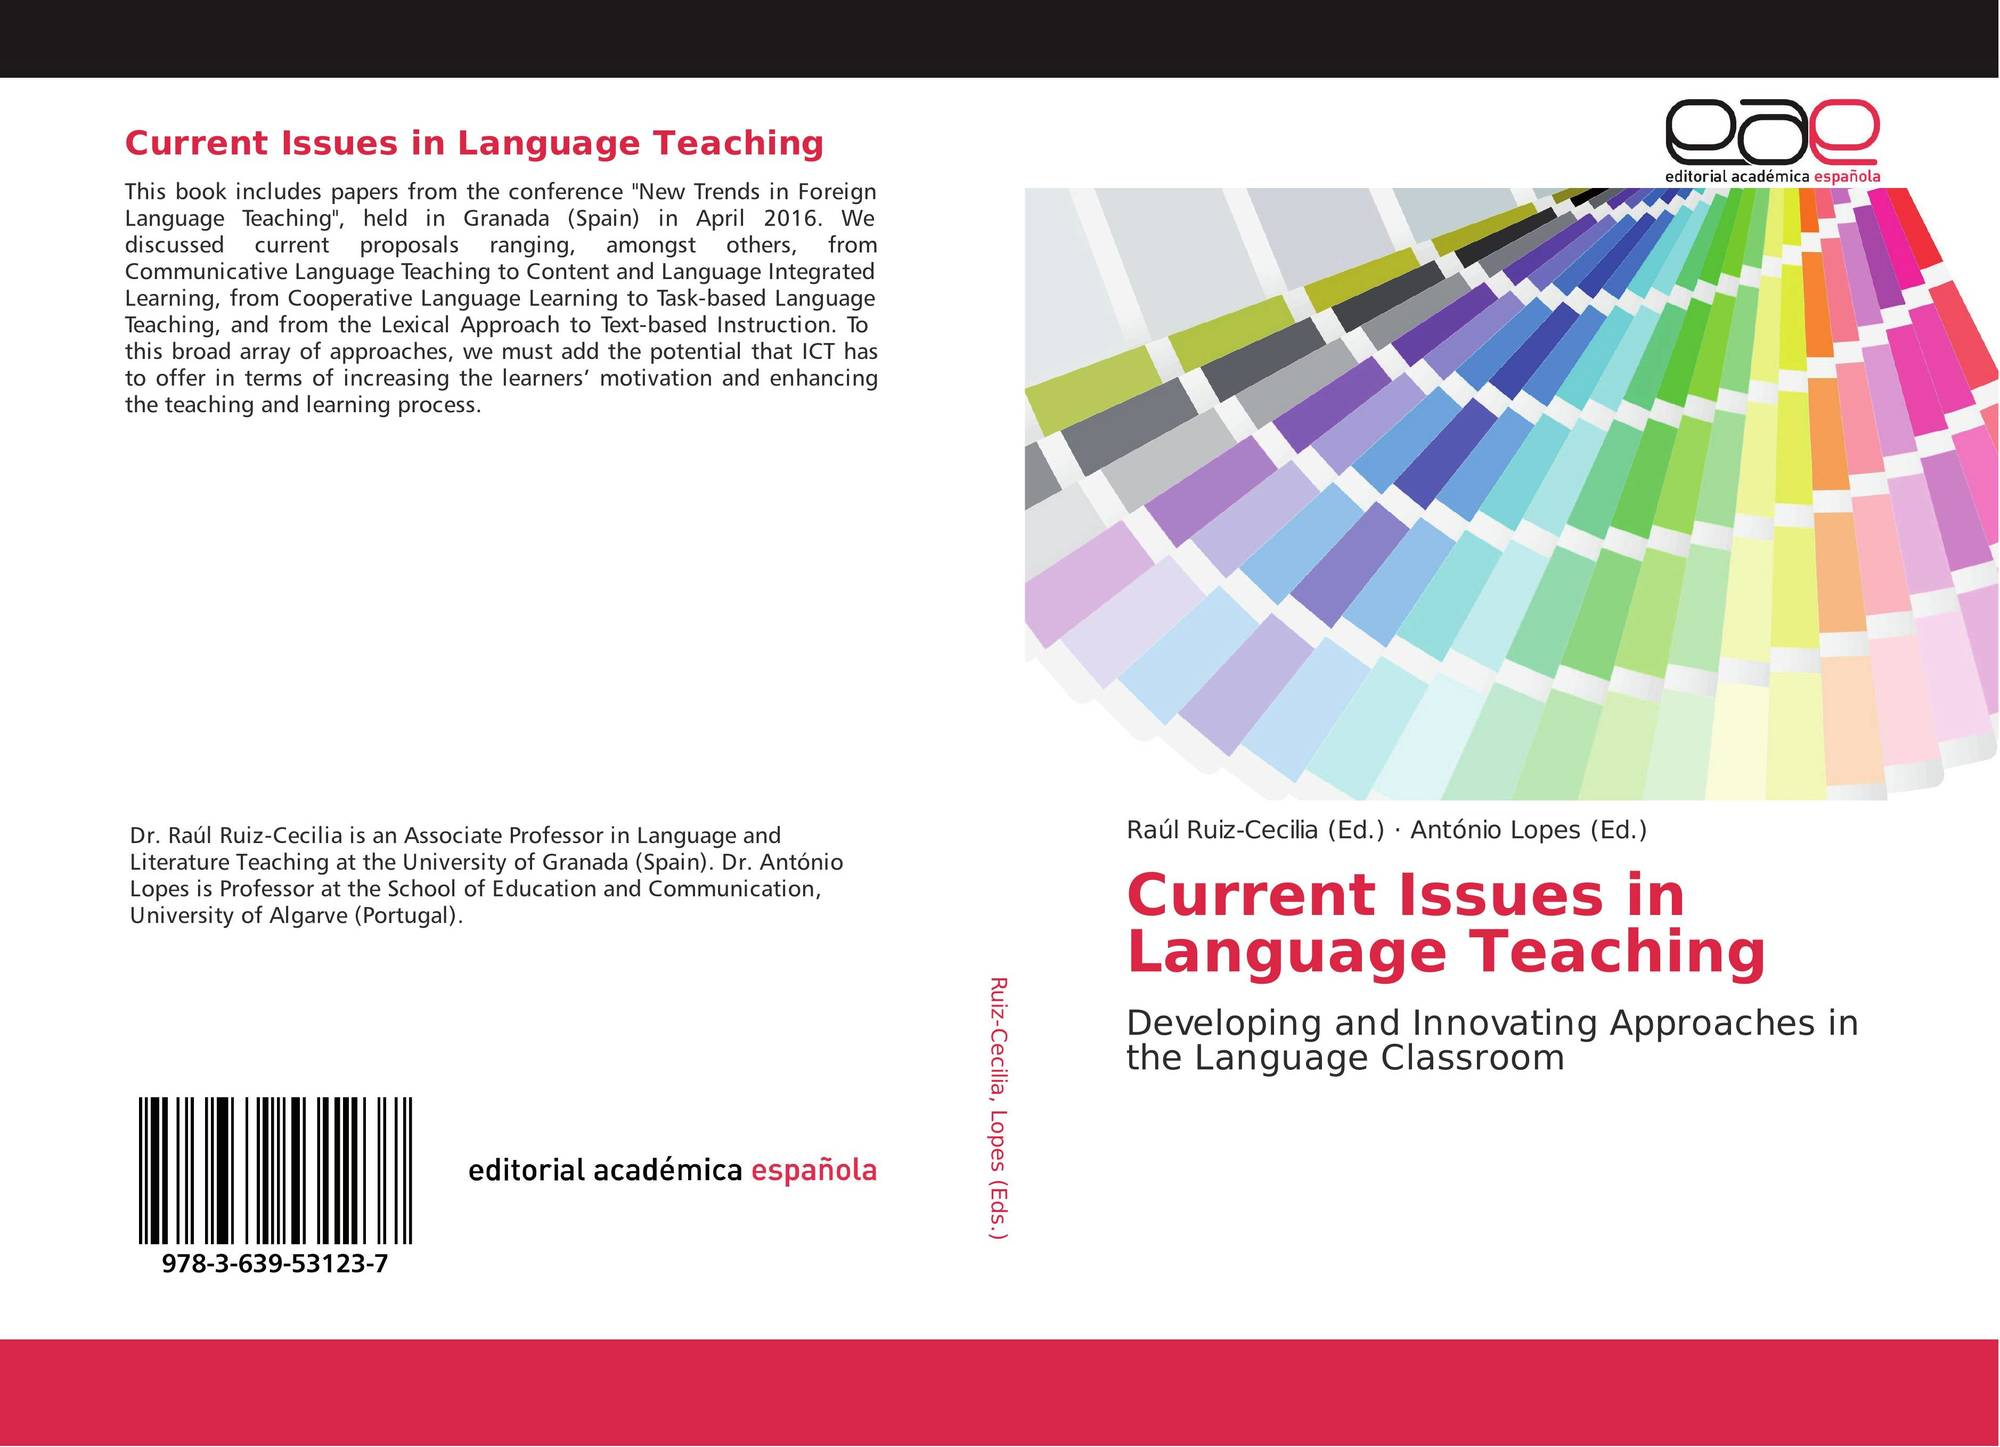 Current Issues in Language Teaching, 978-3-639-53123-7